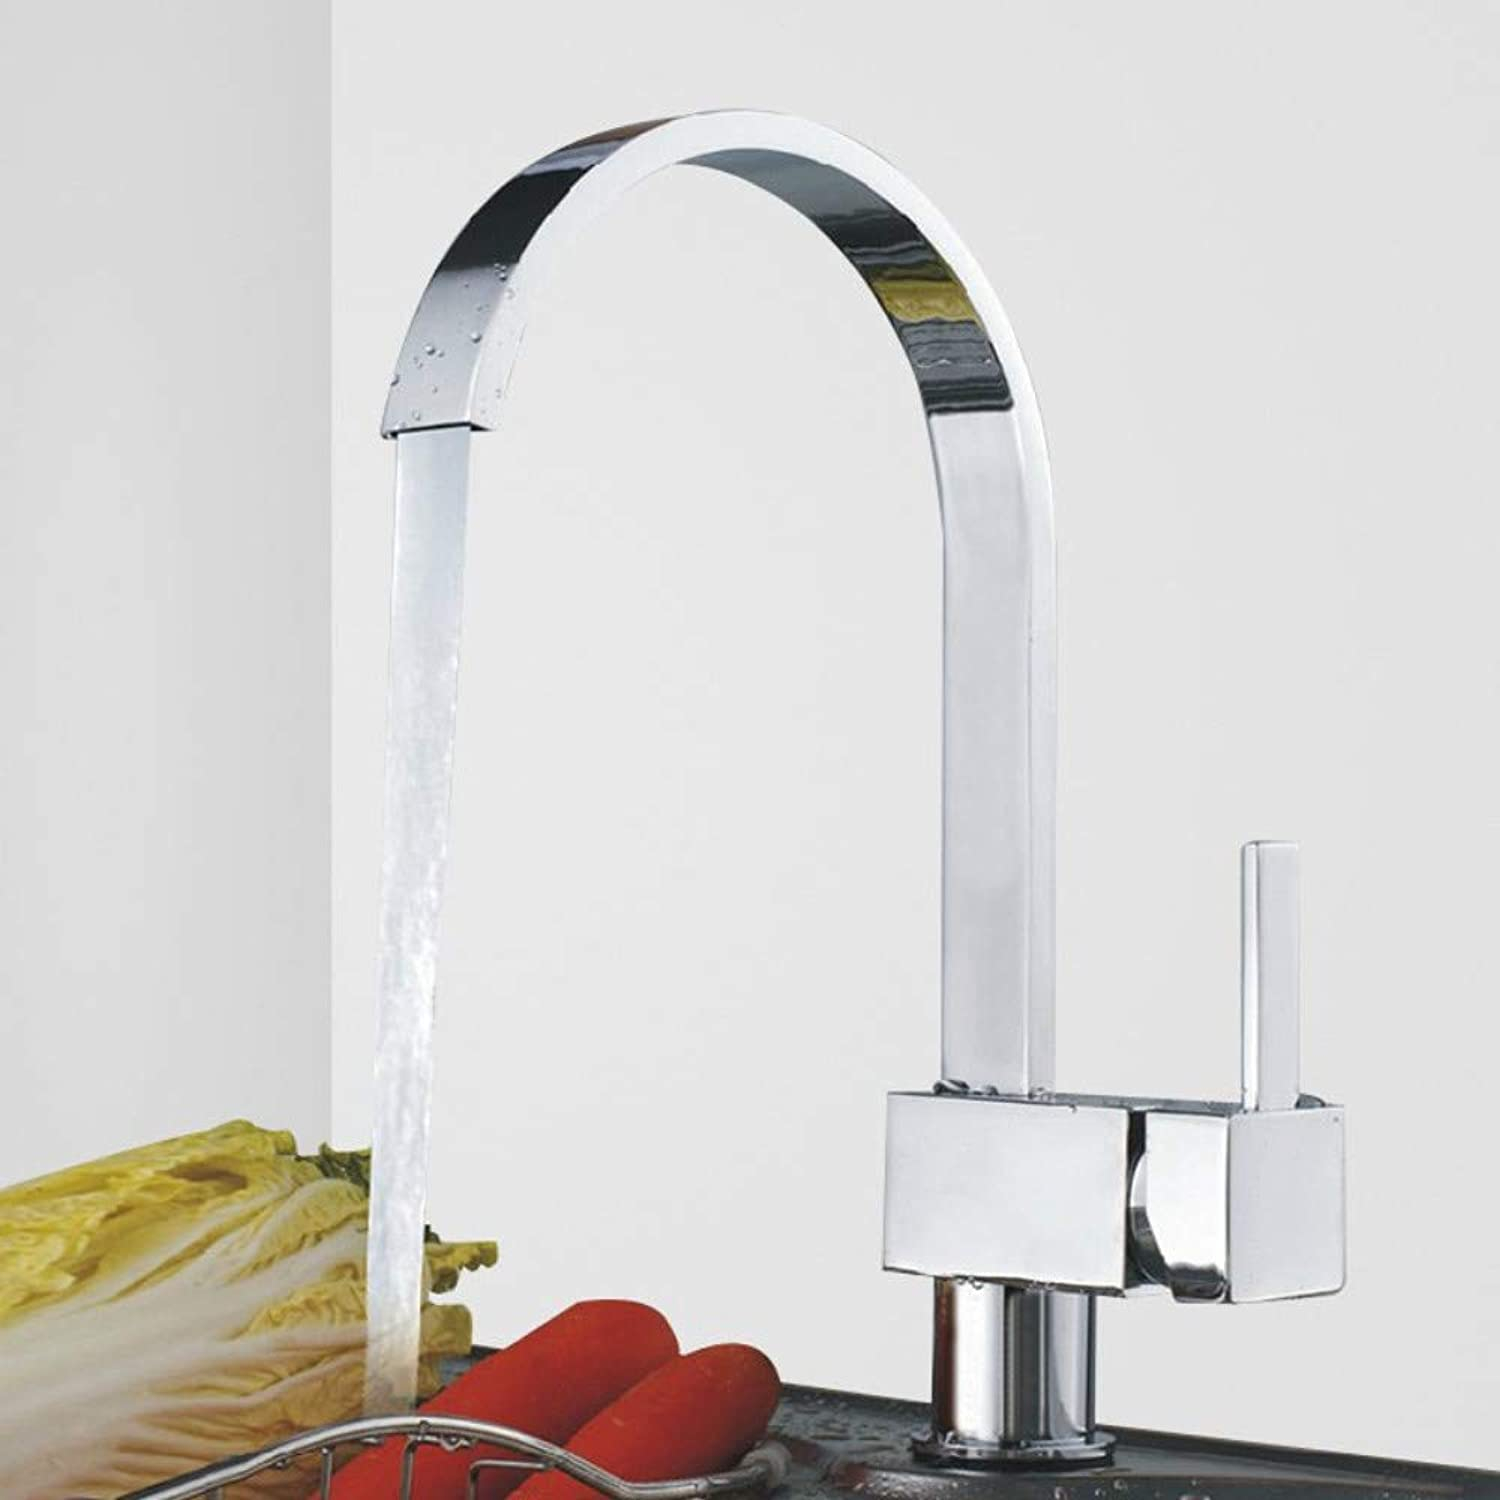 redOOY Taps Faucet Hot And Cold Water Faucet Copper Square Single Handle Single Hole 360 ??redating Faucet Art Wash Basin